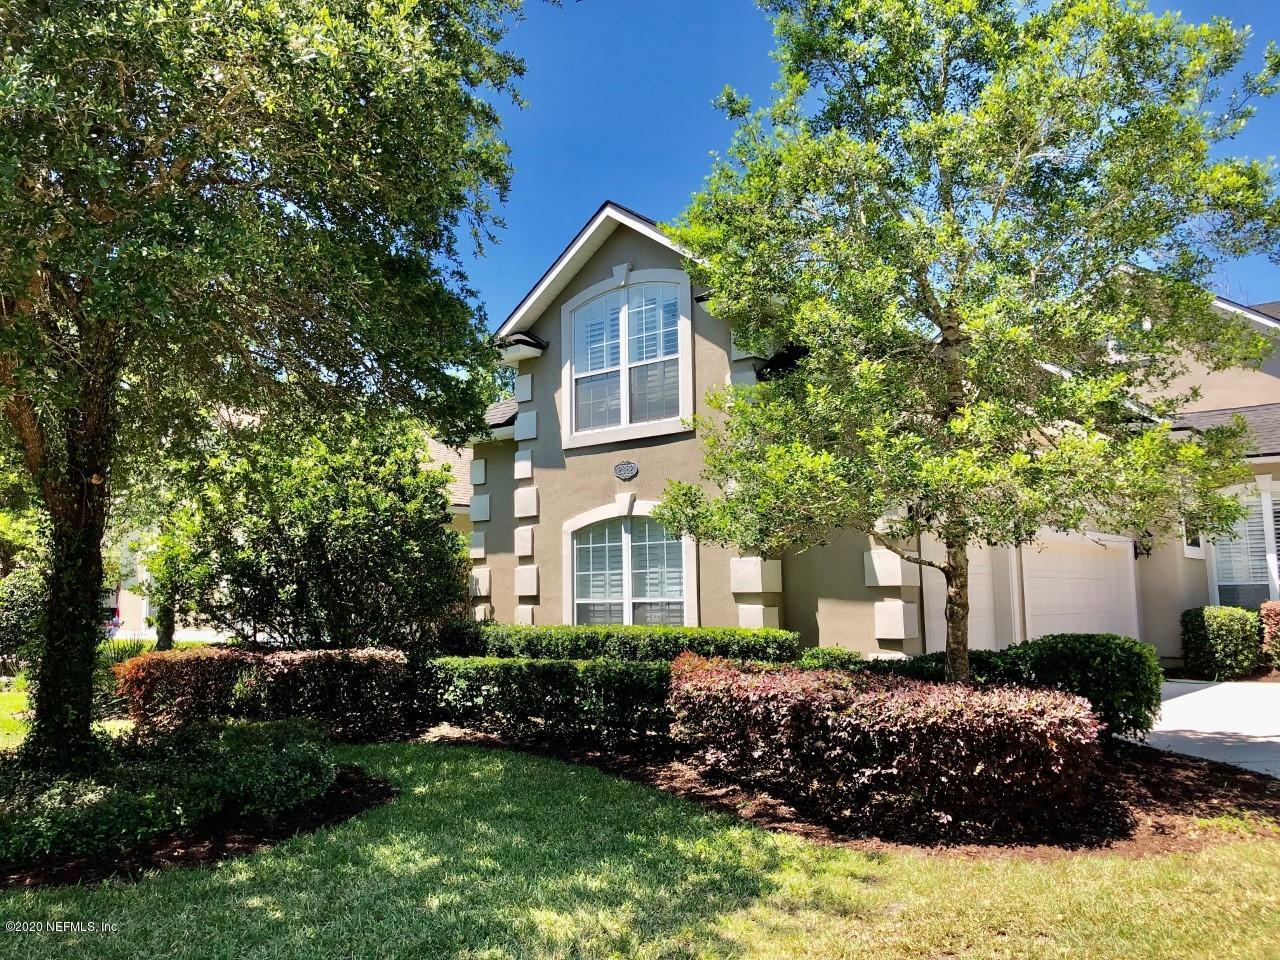 2382 CLOVELLY, ST AUGUSTINE, FLORIDA 32092, 5 Bedrooms Bedrooms, ,5 BathroomsBathrooms,Investment / MultiFamily,For sale,CLOVELLY,1063602